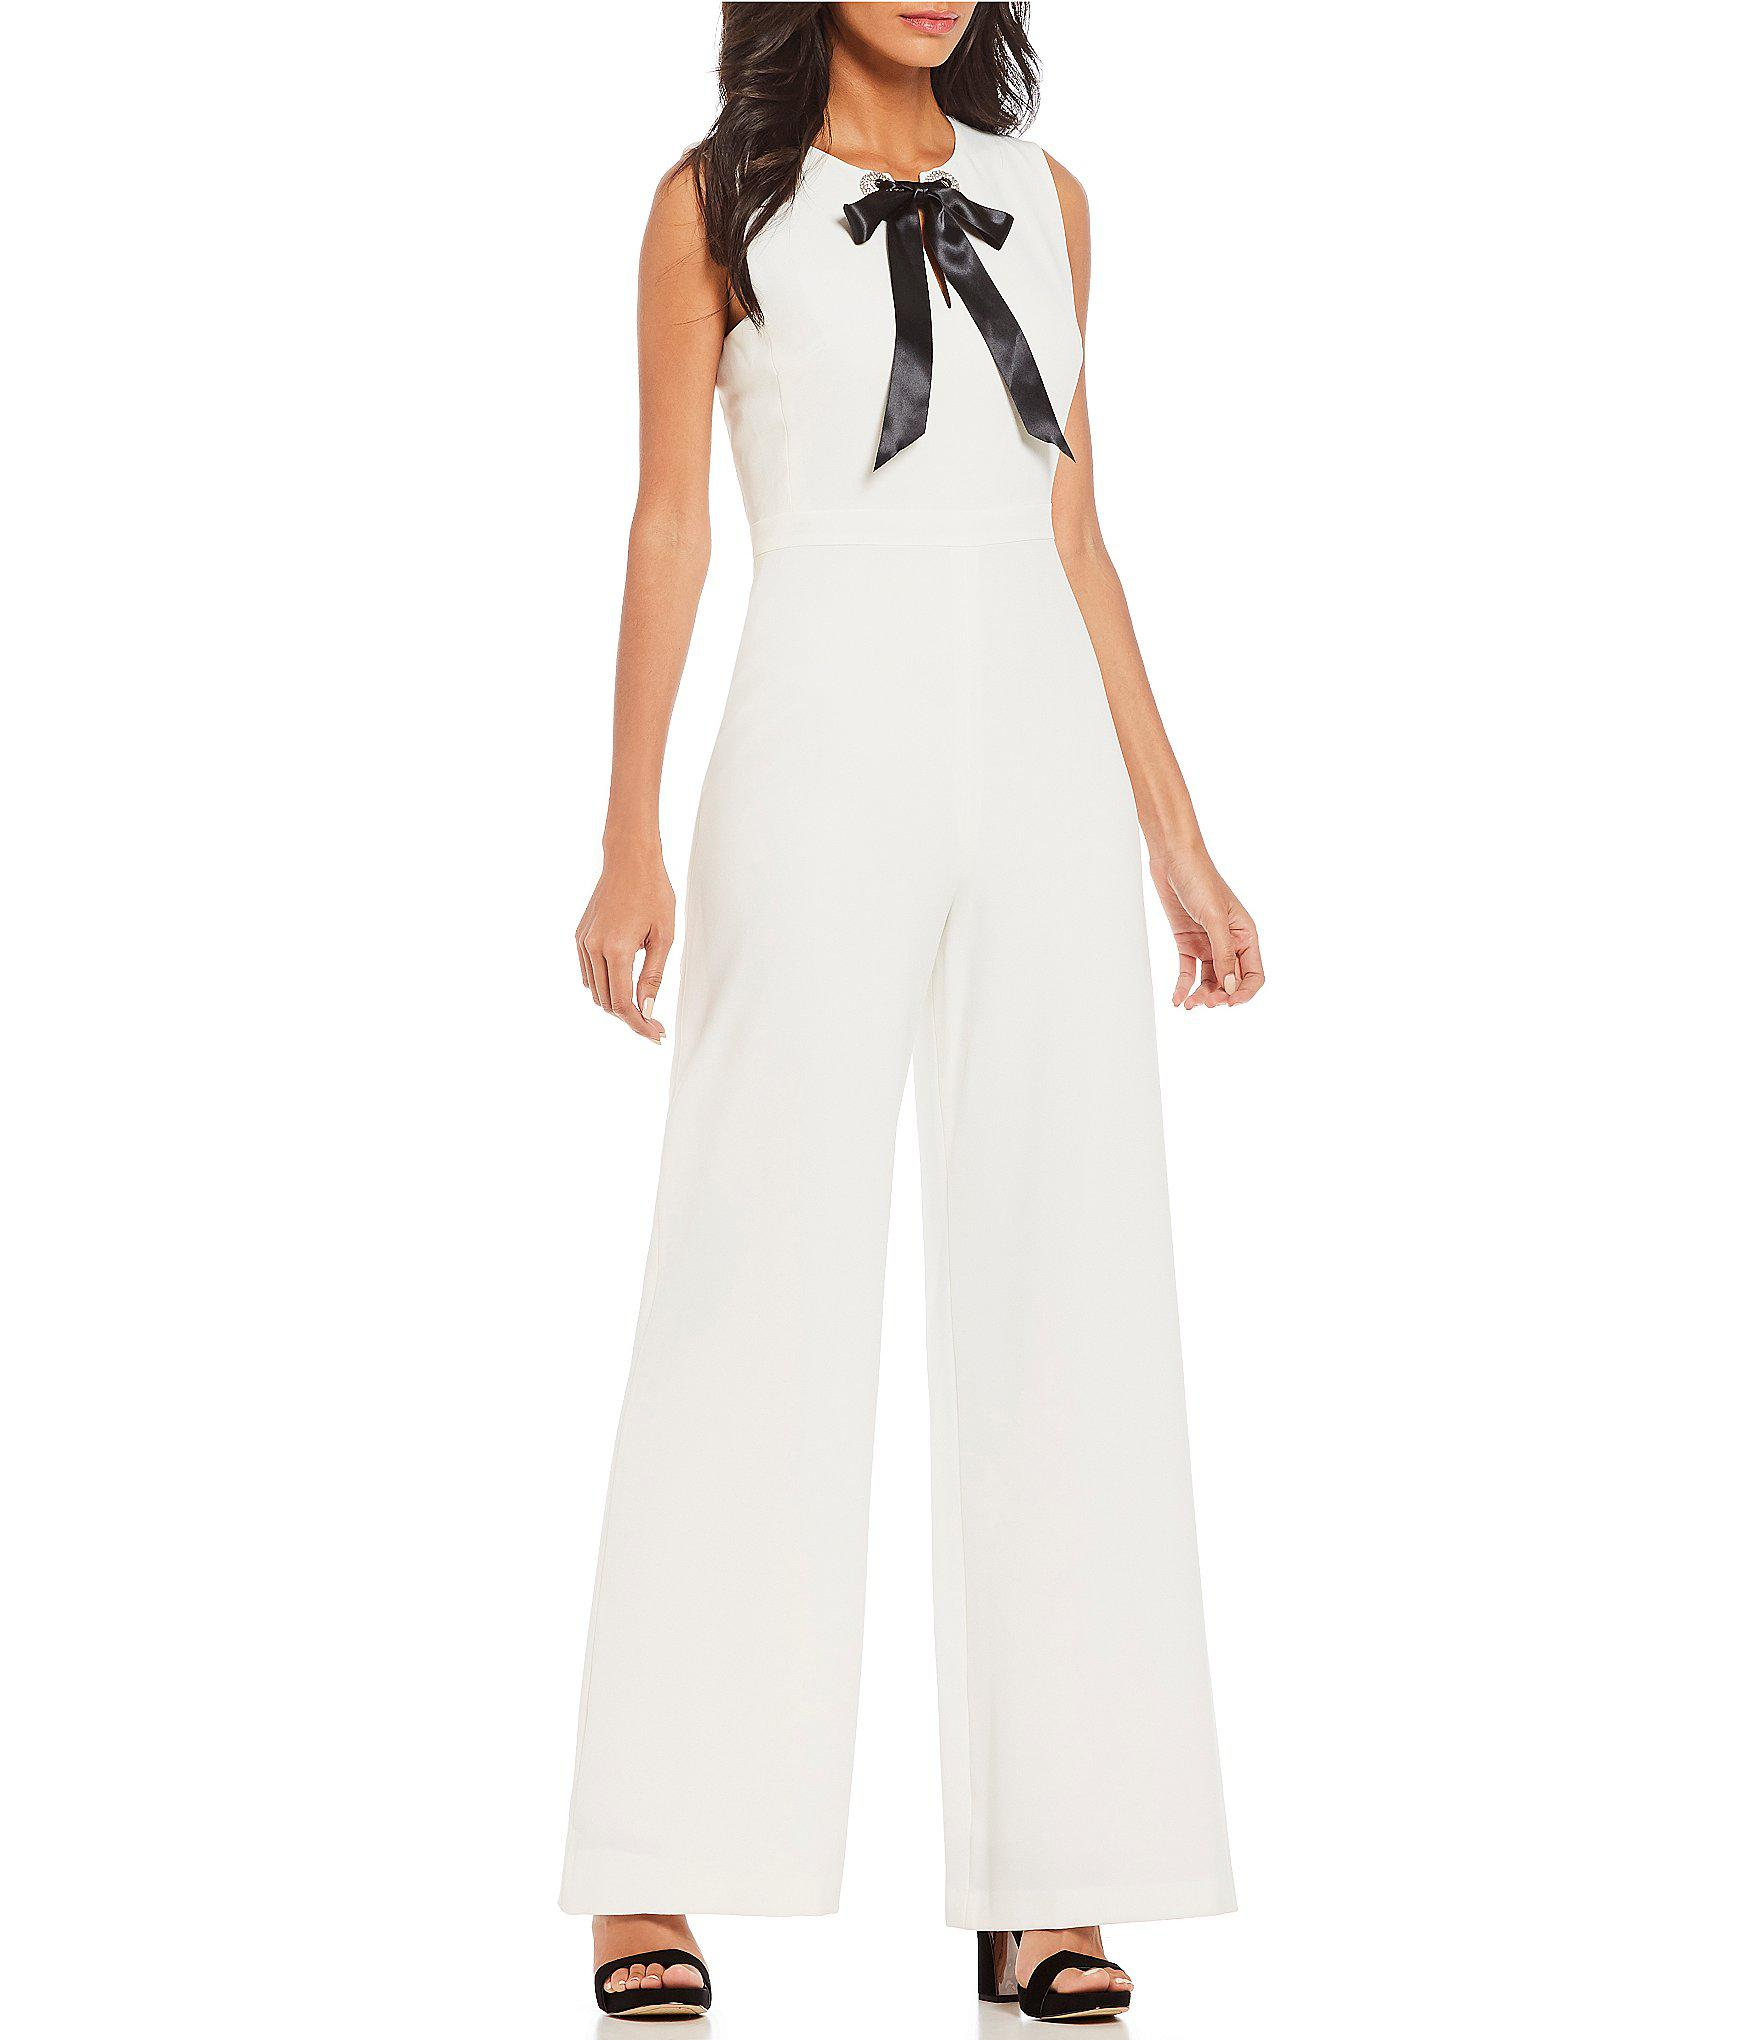 936e025a0a2 Lyst - Karl Lagerfeld Tie Bow Jumpsuit in White